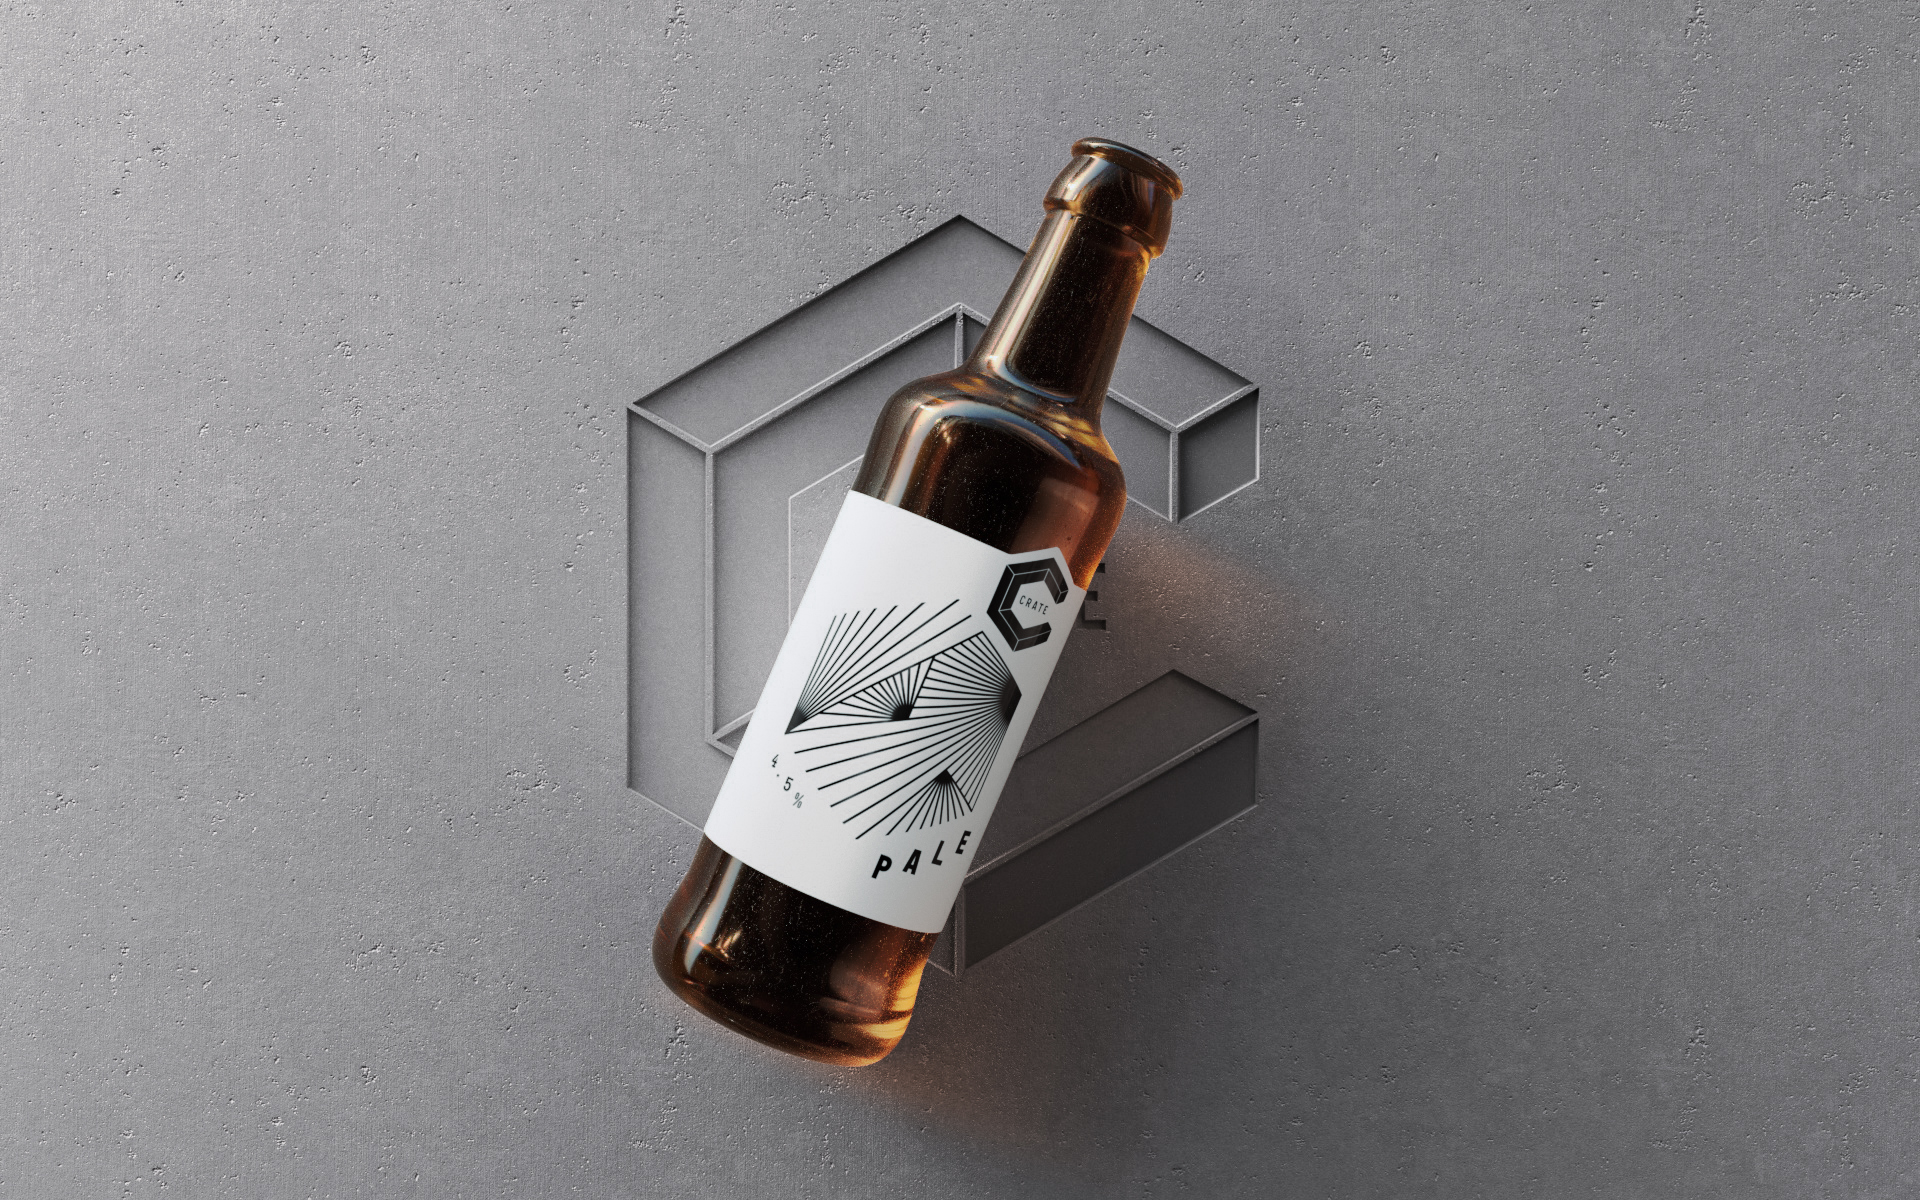 craft-beer-bottle-3d-rendered-packshot